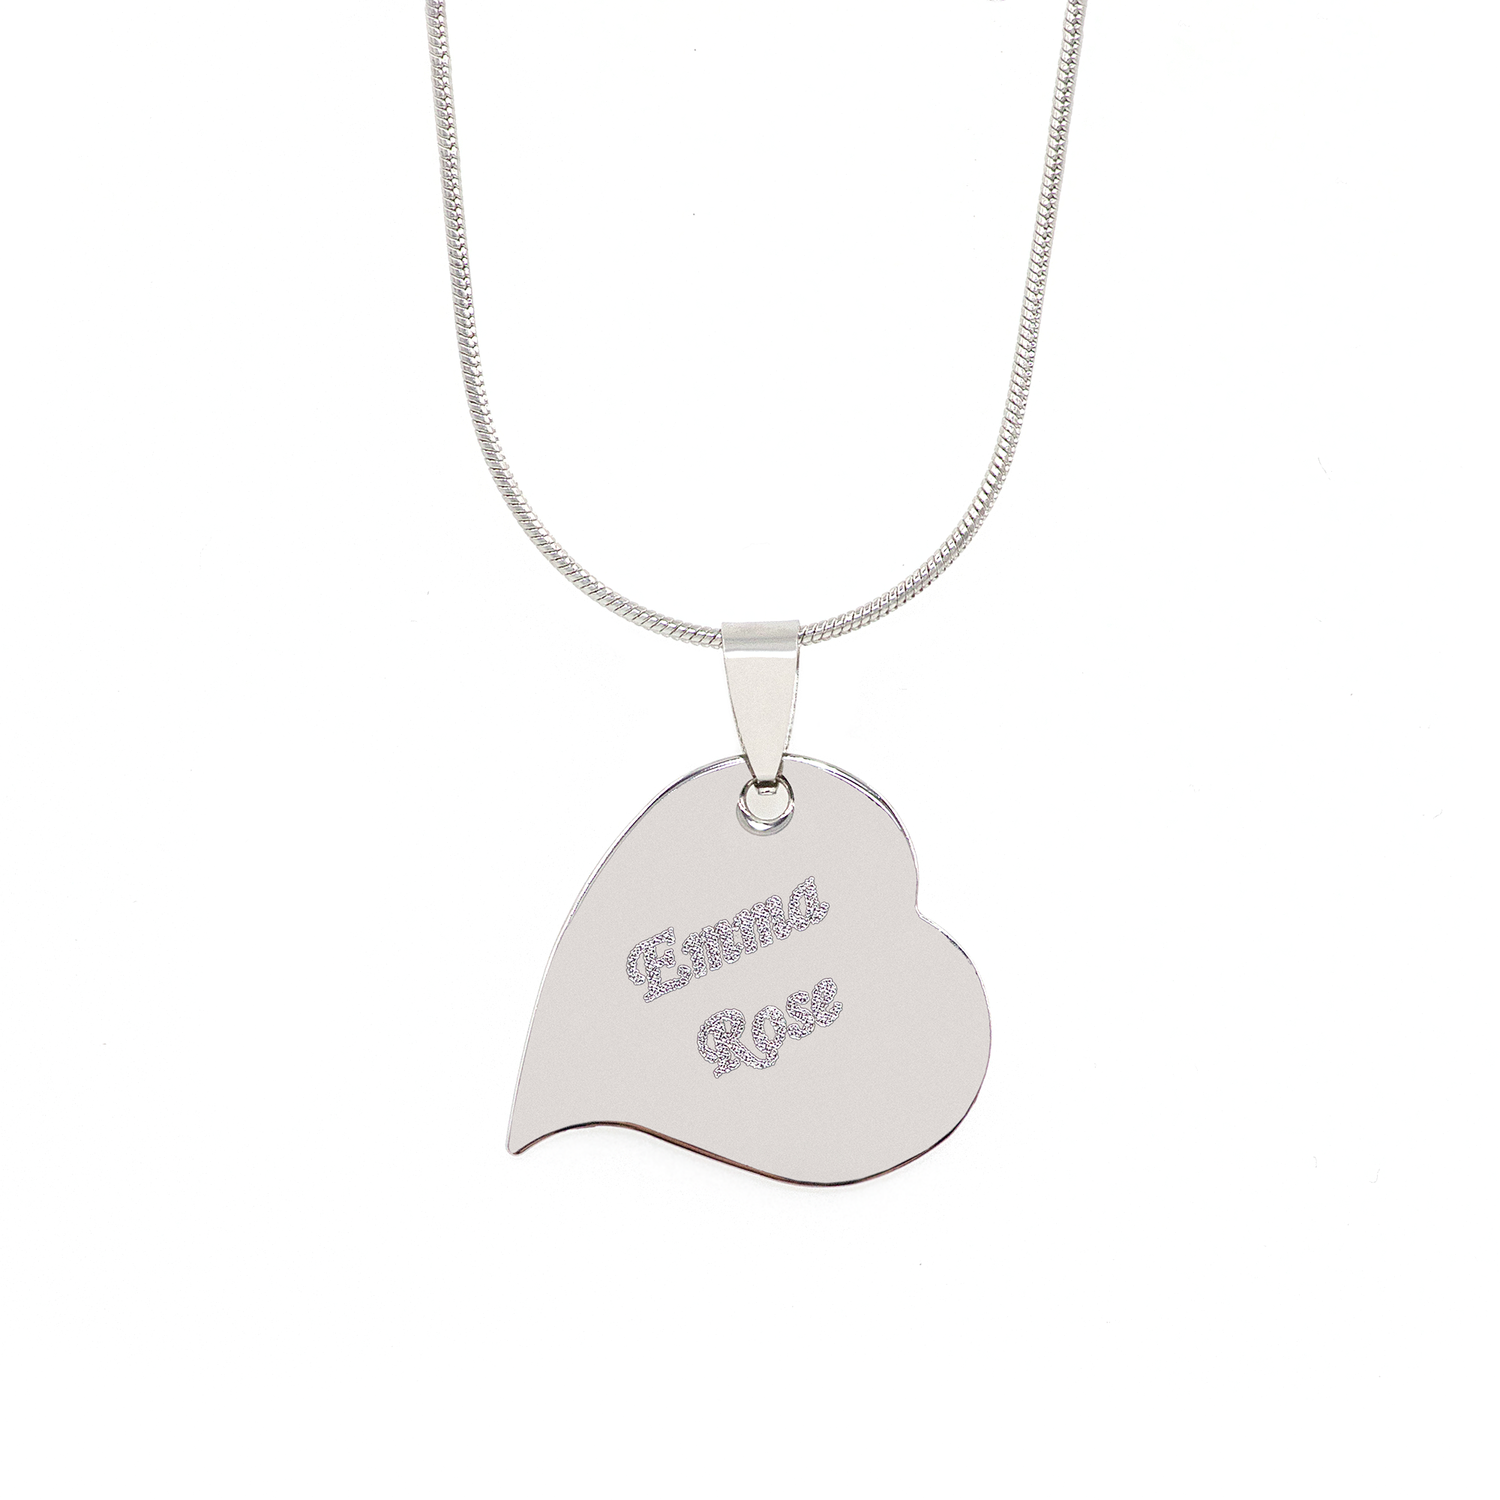 Heartbeat Charm Necklace